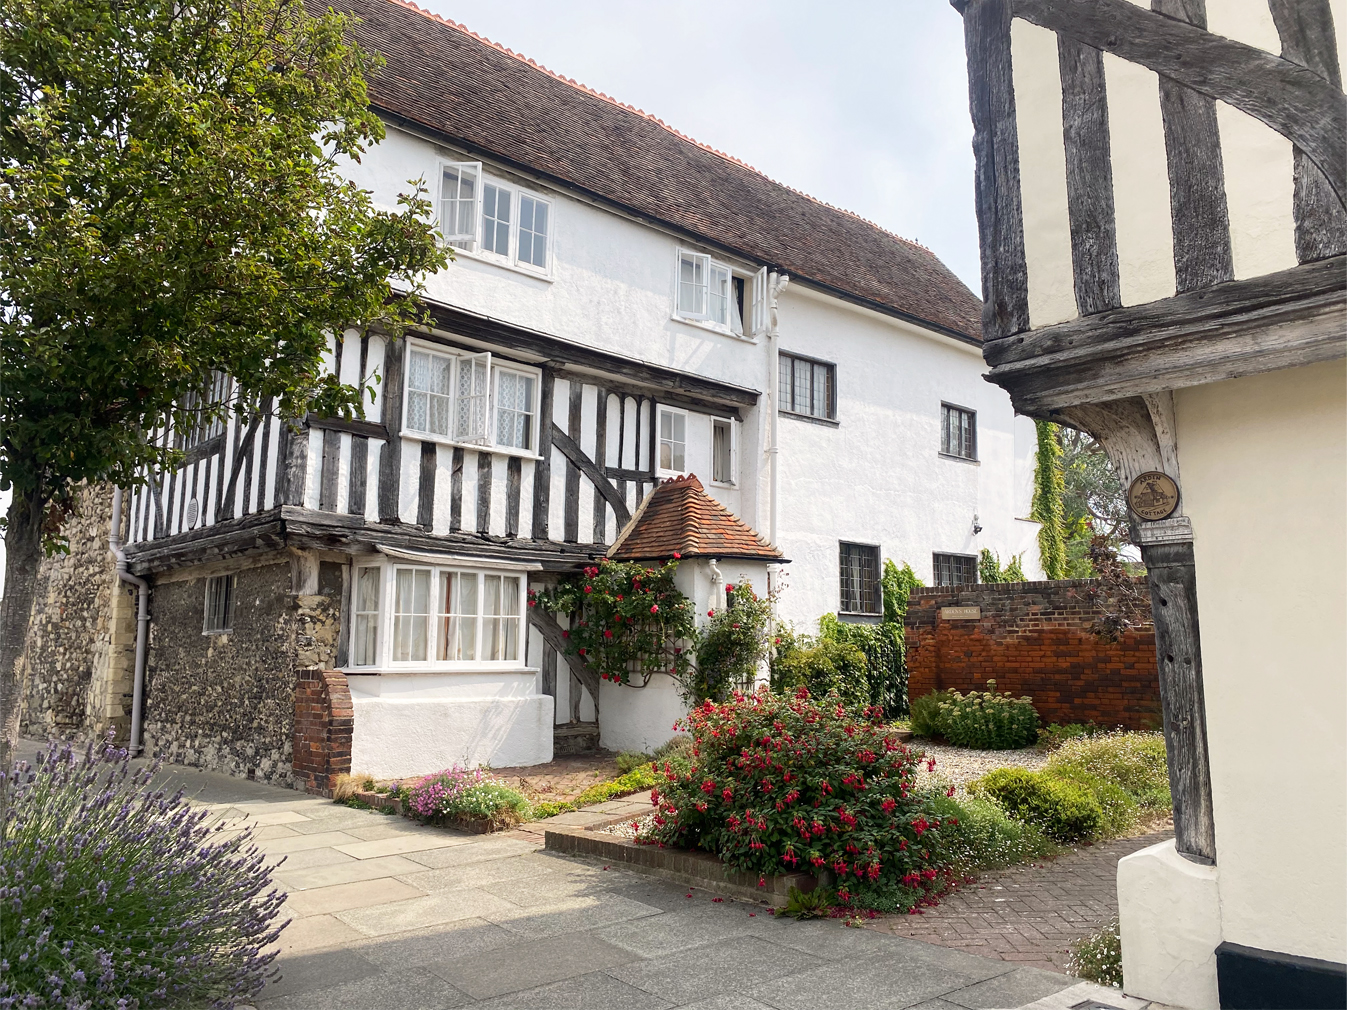 Faversham Historical Houses